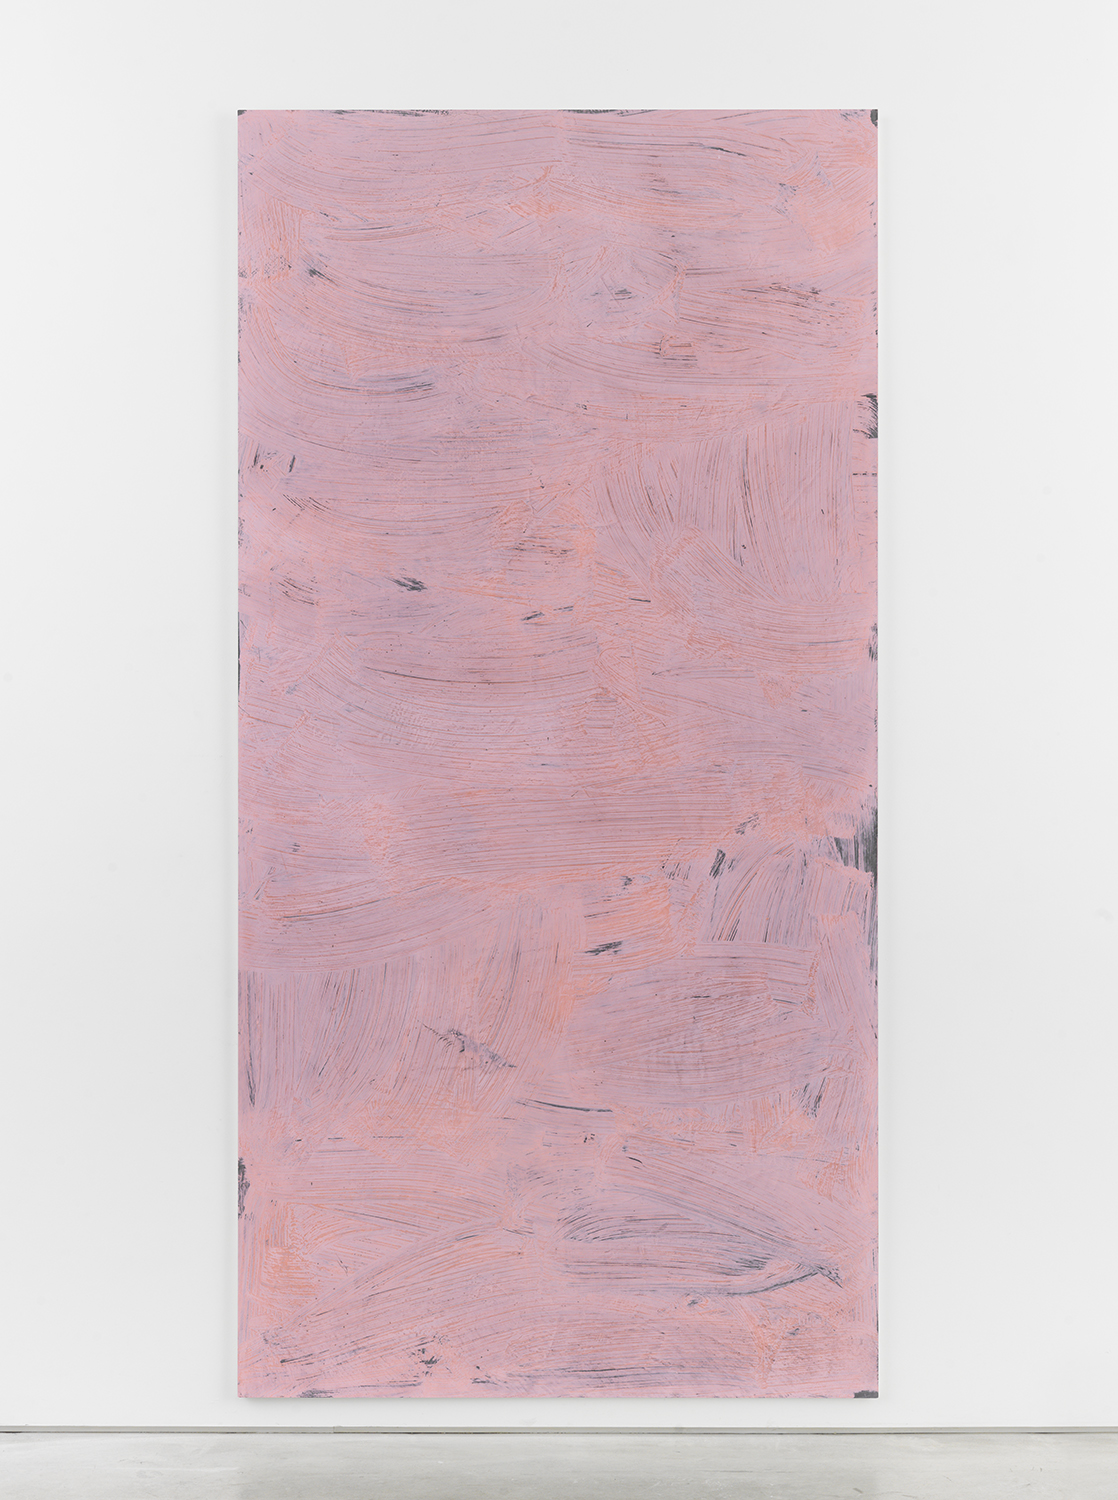 Alex Kwartler, Untitled, 2016, pigmented plaster on plywood, 96 x 48 in.